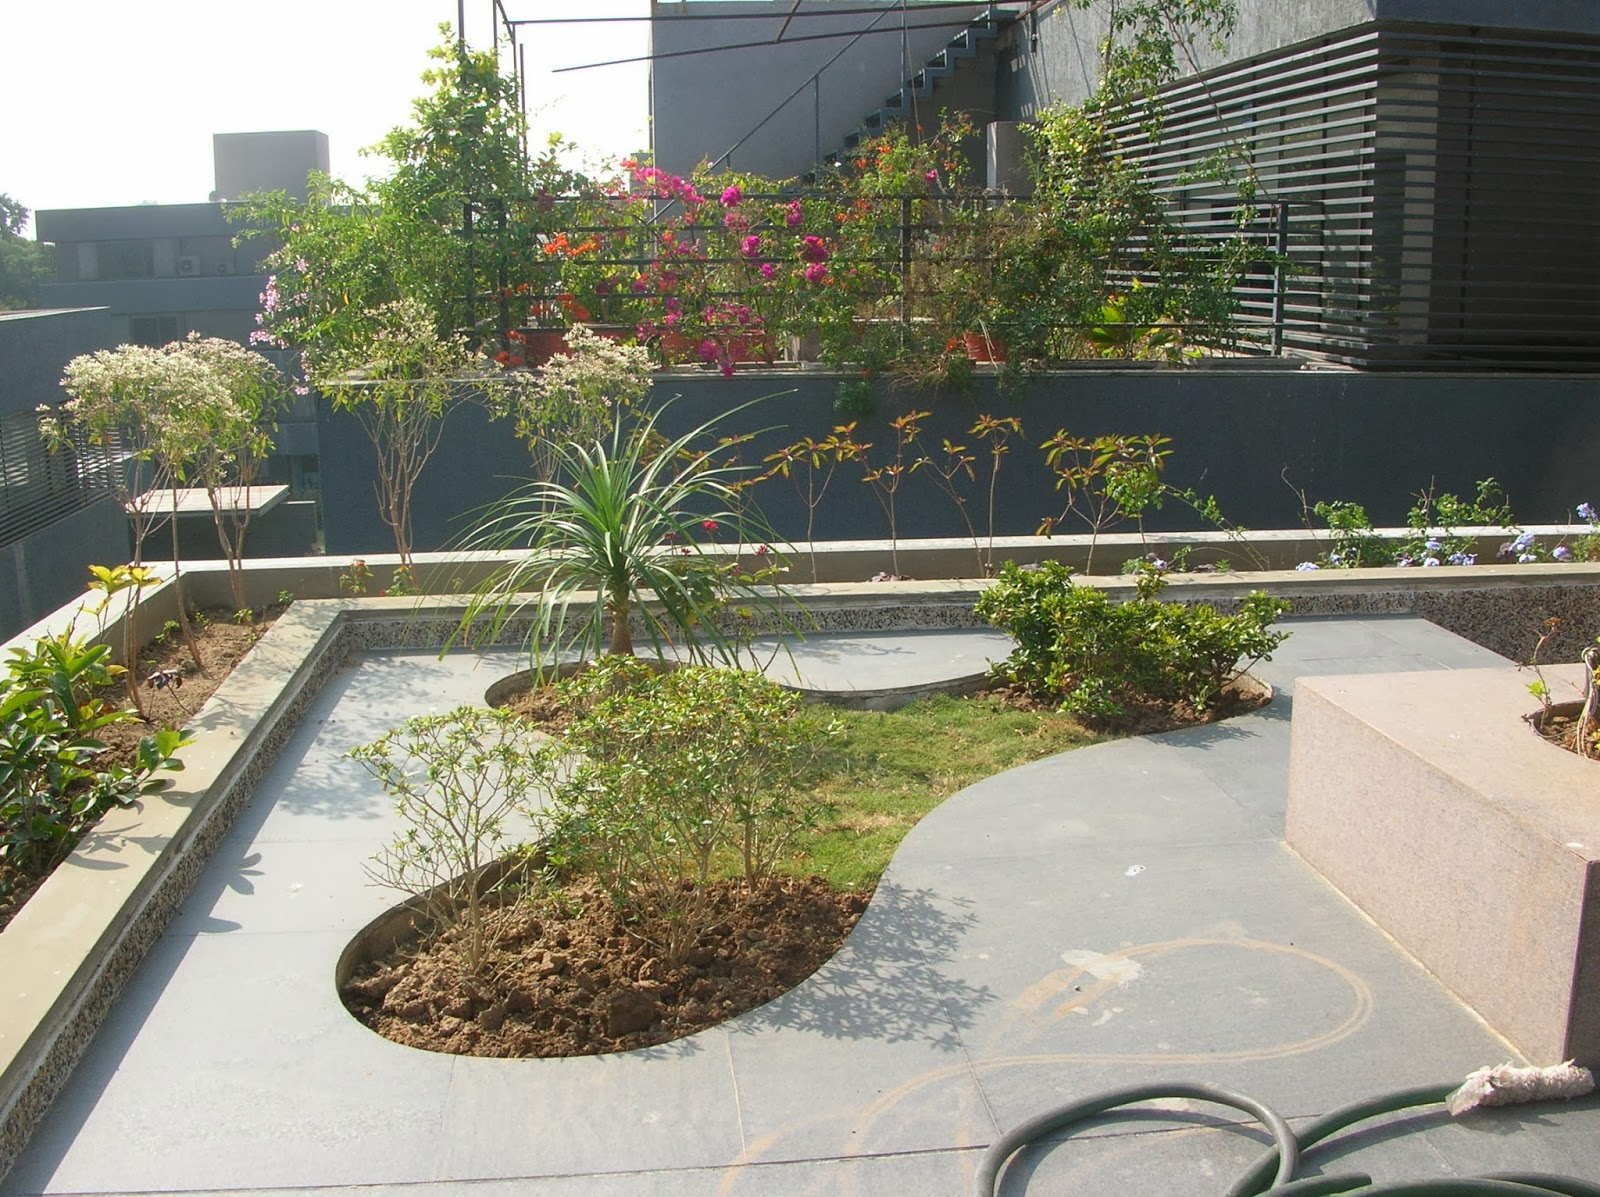 Bonsai trees and plants in ahmedabad for sale garden for Terrace garden designs